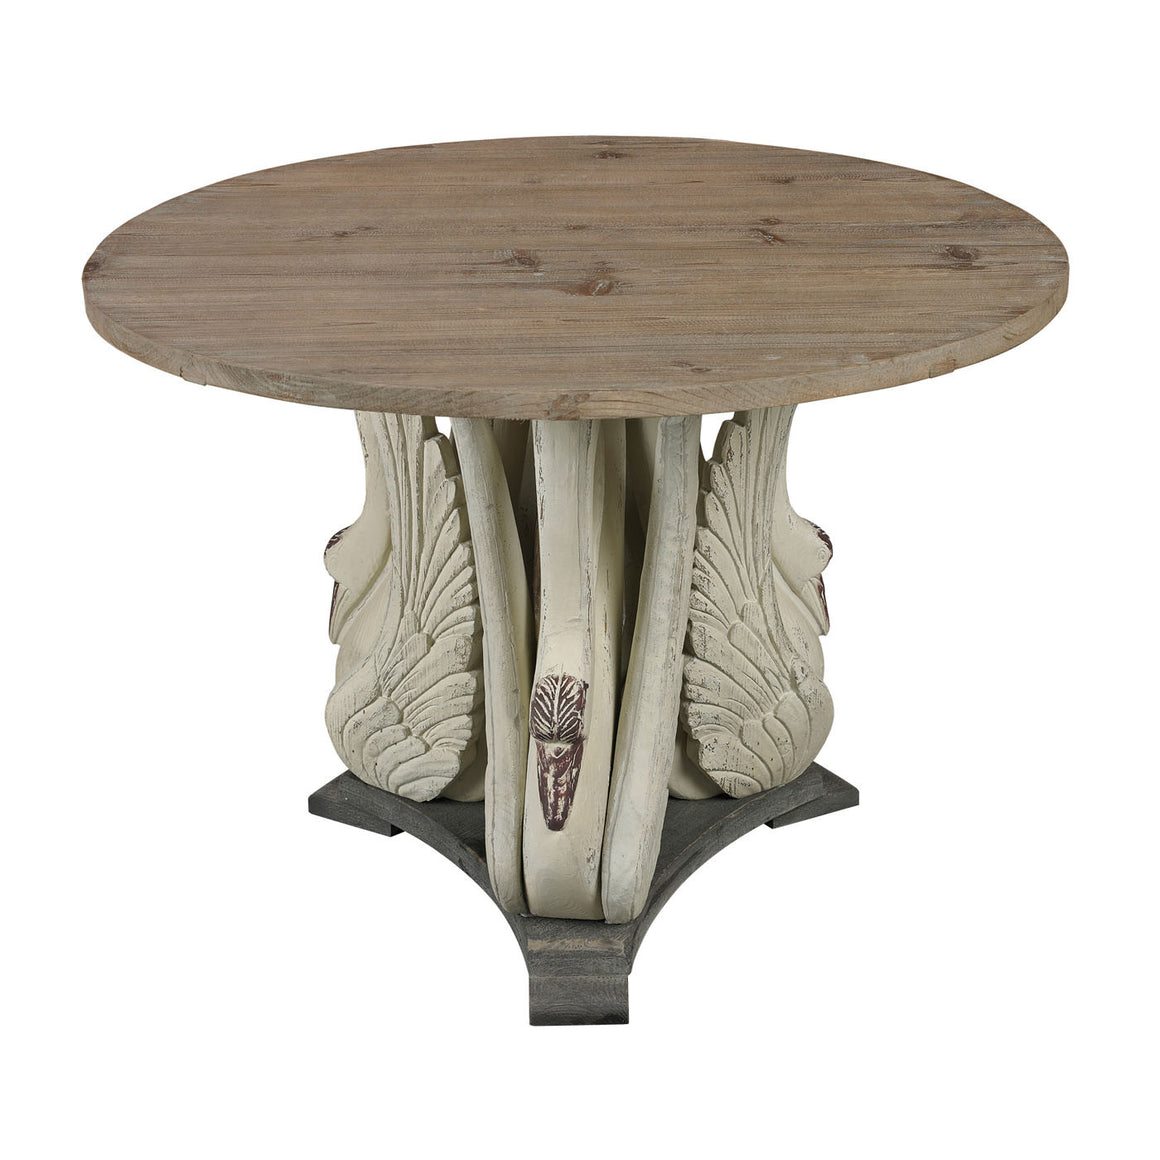 Baywood-Swan Accent Table With Wooden Top 138-086 by Sterling